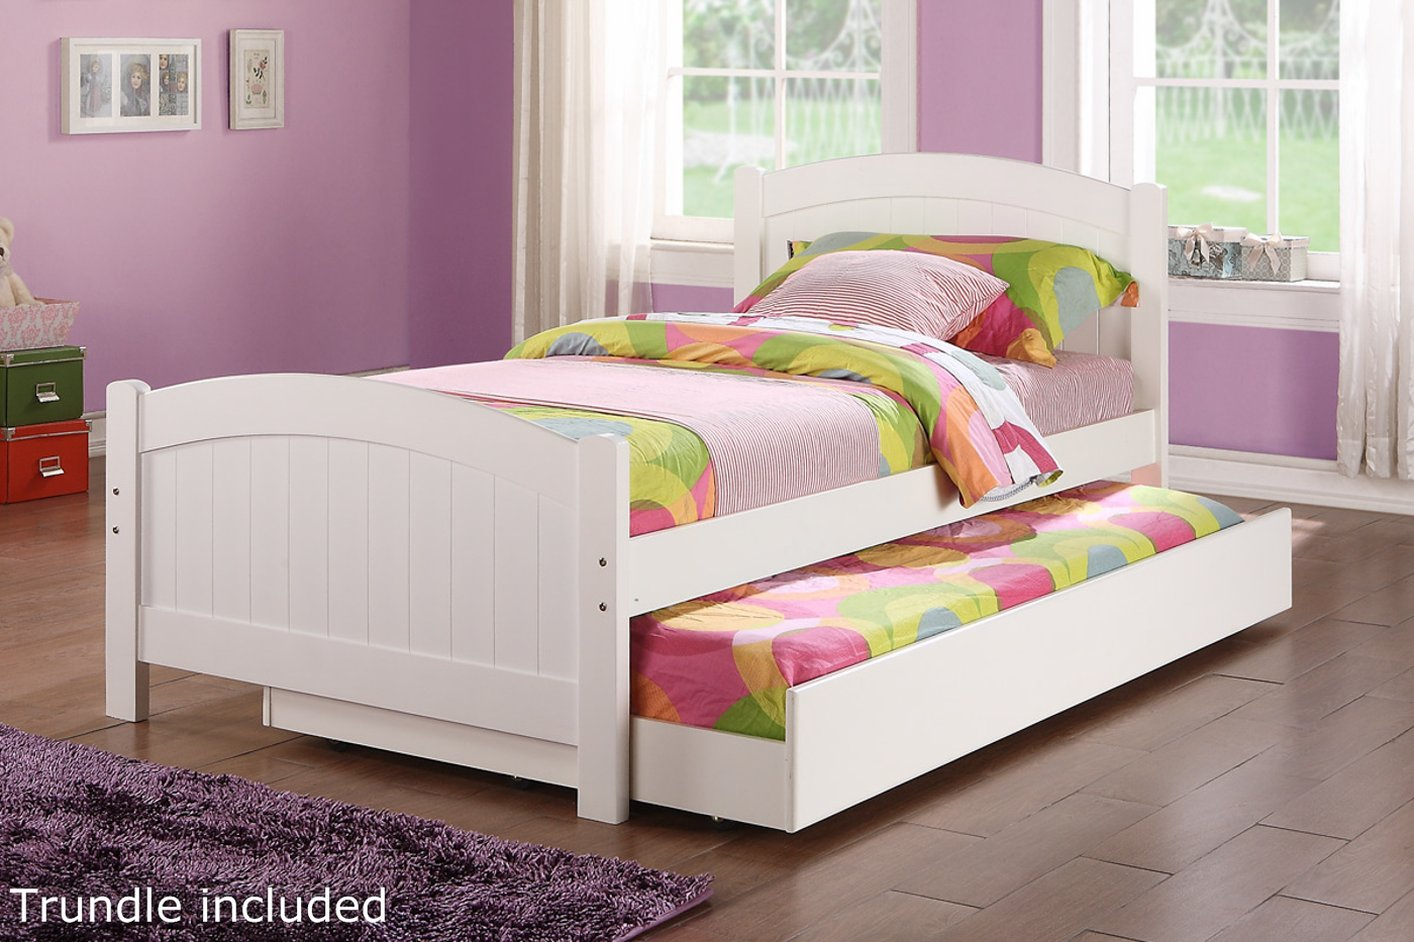 Poundex F9218 White Twin Size Wood Bed Steal A Sofa